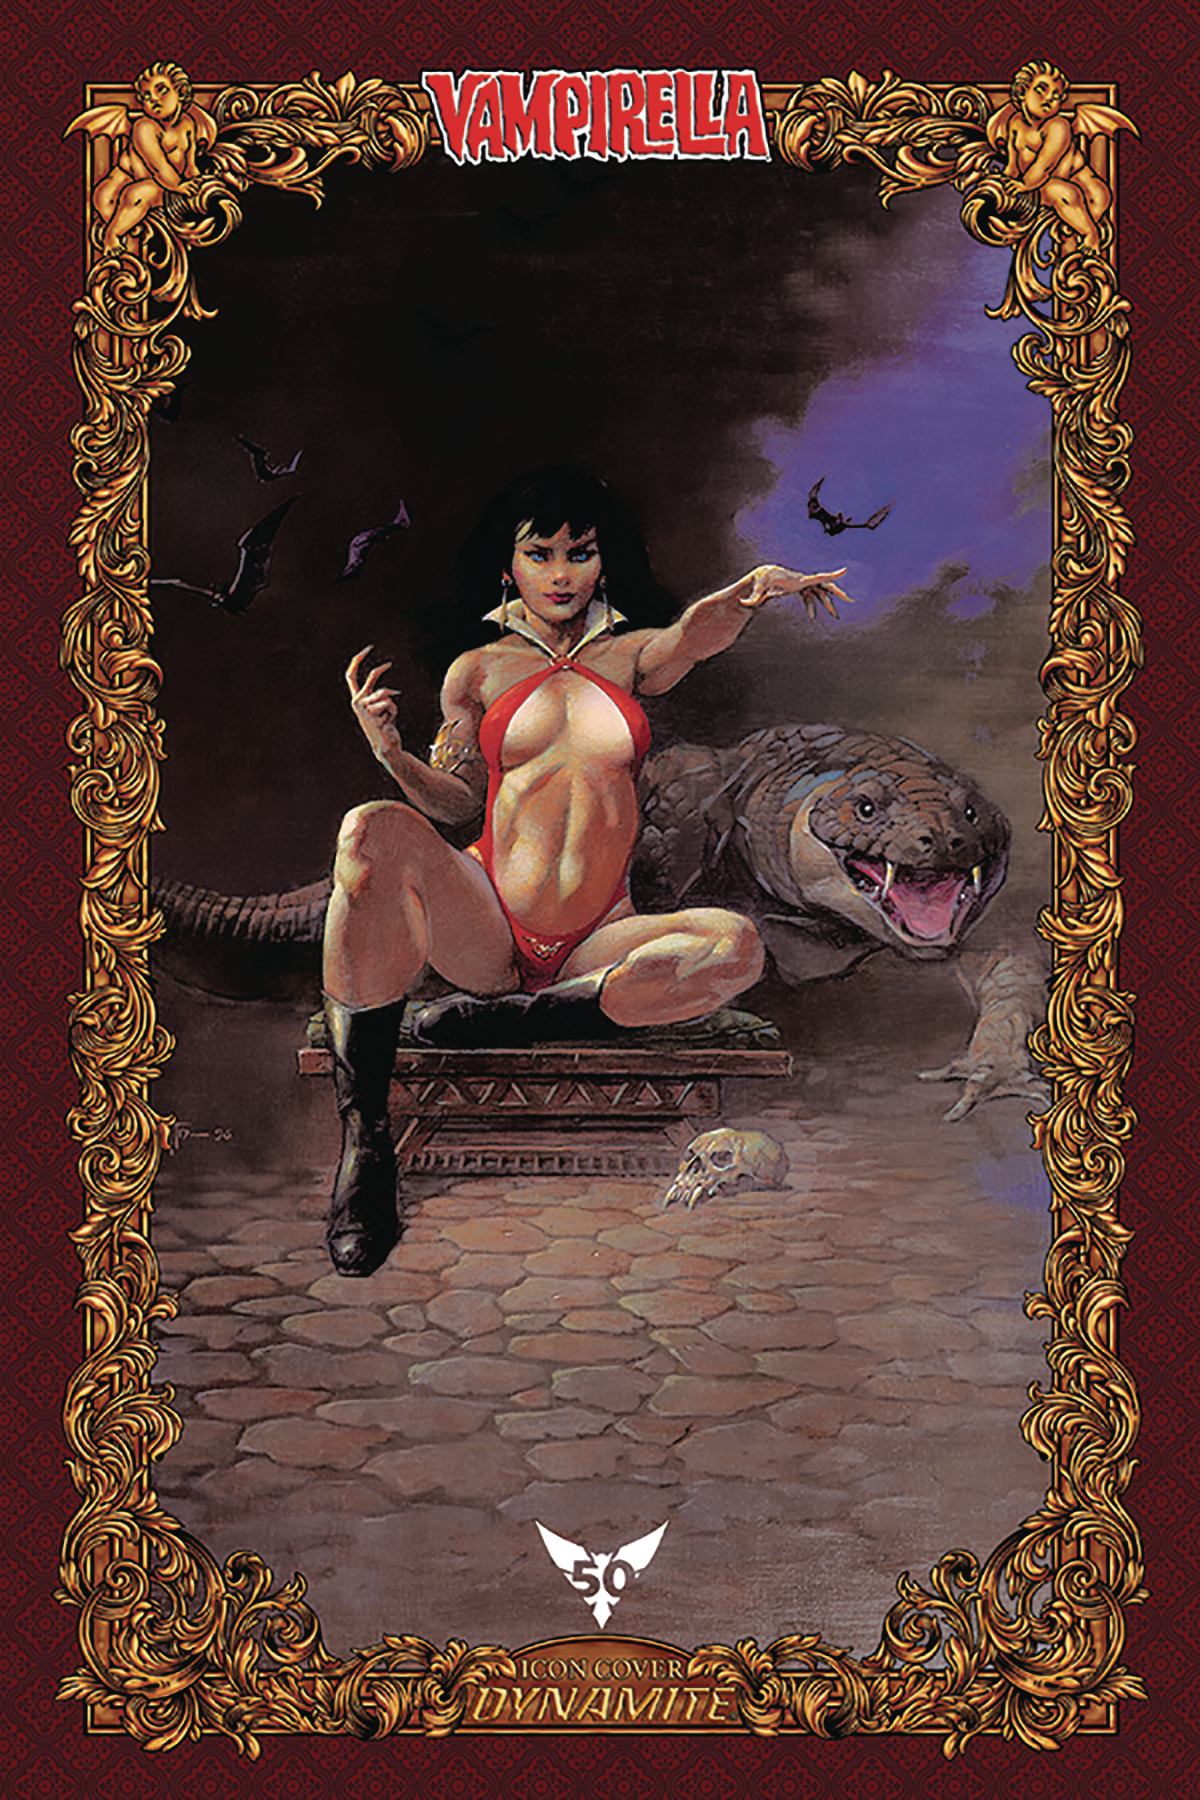 VAMPIRELLA #6 75 COPY FRAZETTA ICON INCV